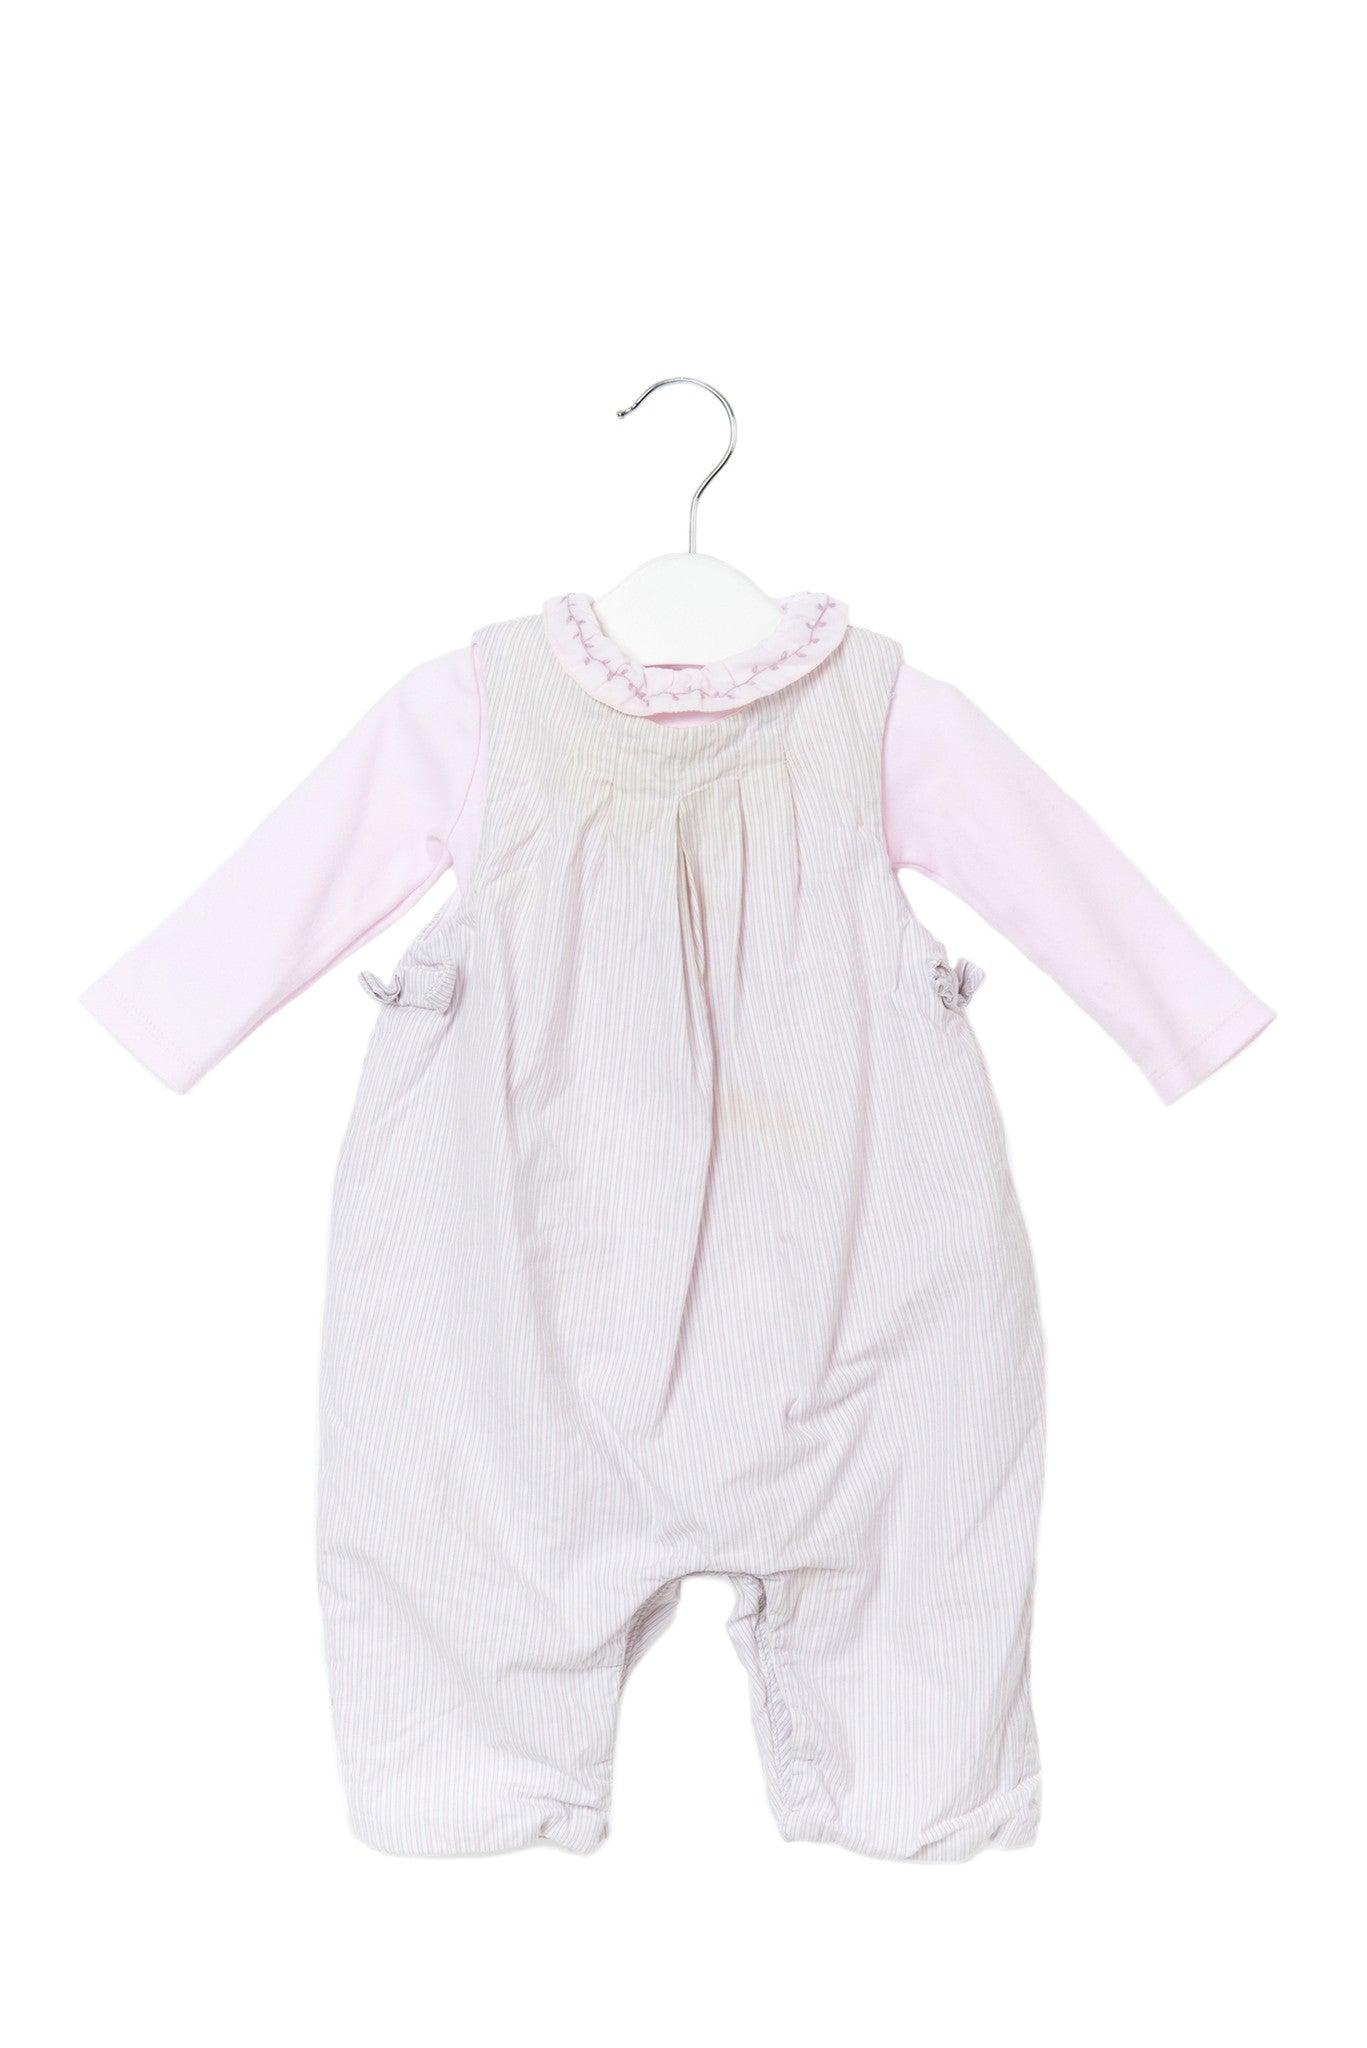 10001310~Set 3-6M, Jacadi at Retykle - Online Baby & Kids Clothing Up to 90% Off